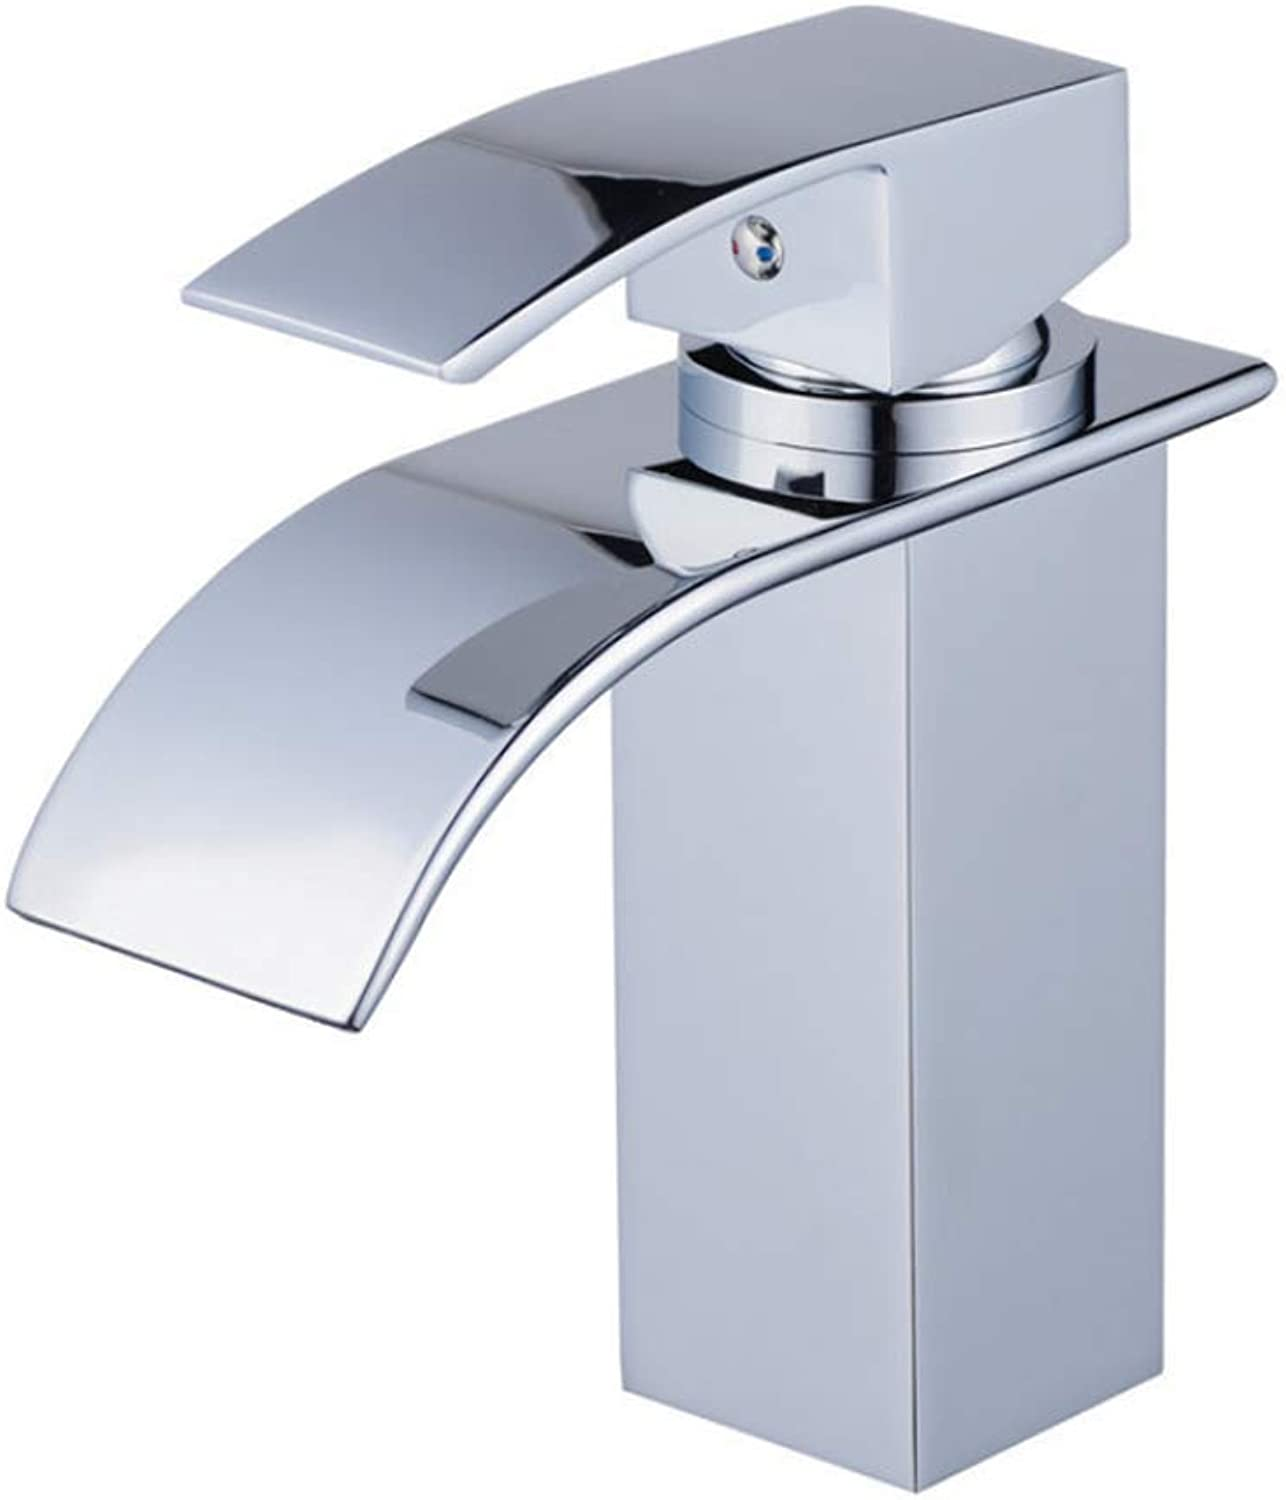 Basin Faucetbathroom Hardware Washbasin Faucet Cold and Hot Facebasin Faucet